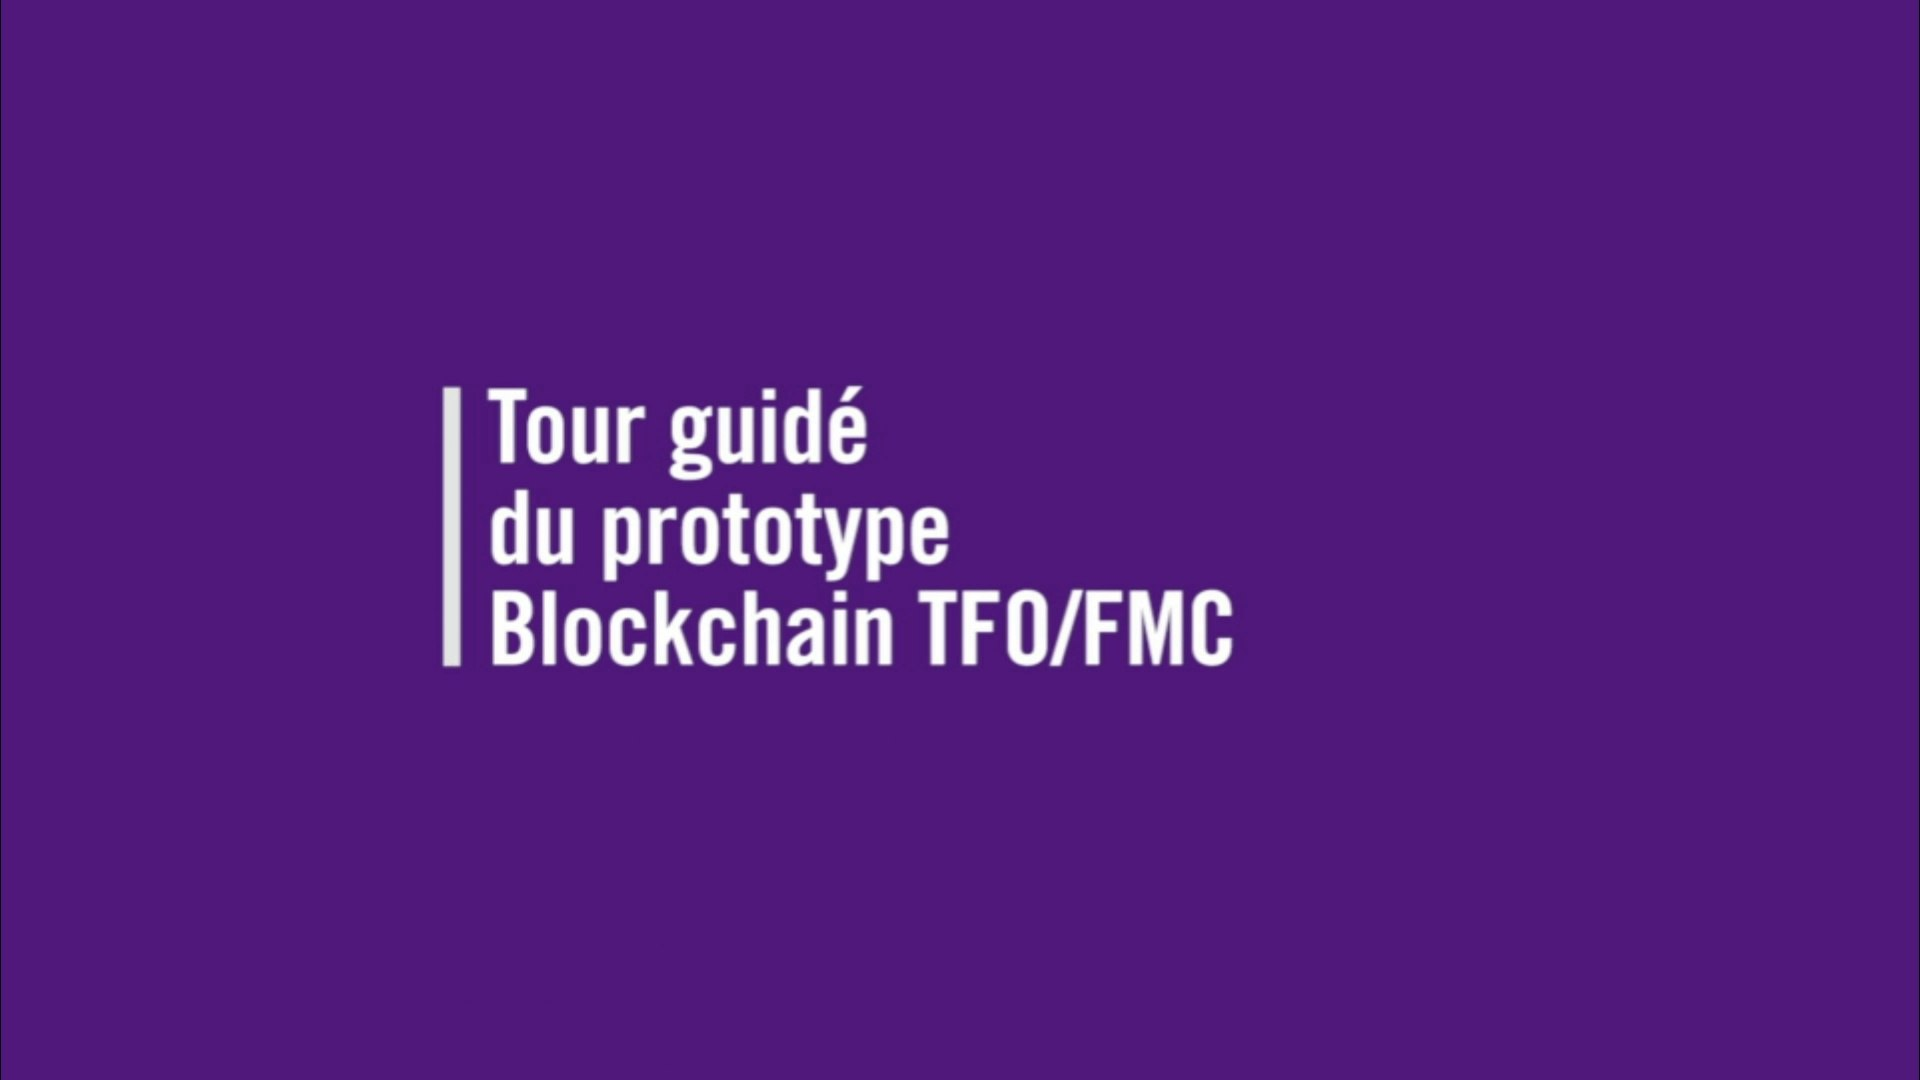 Tour guidé du prototype Blockchain TFO/FMC